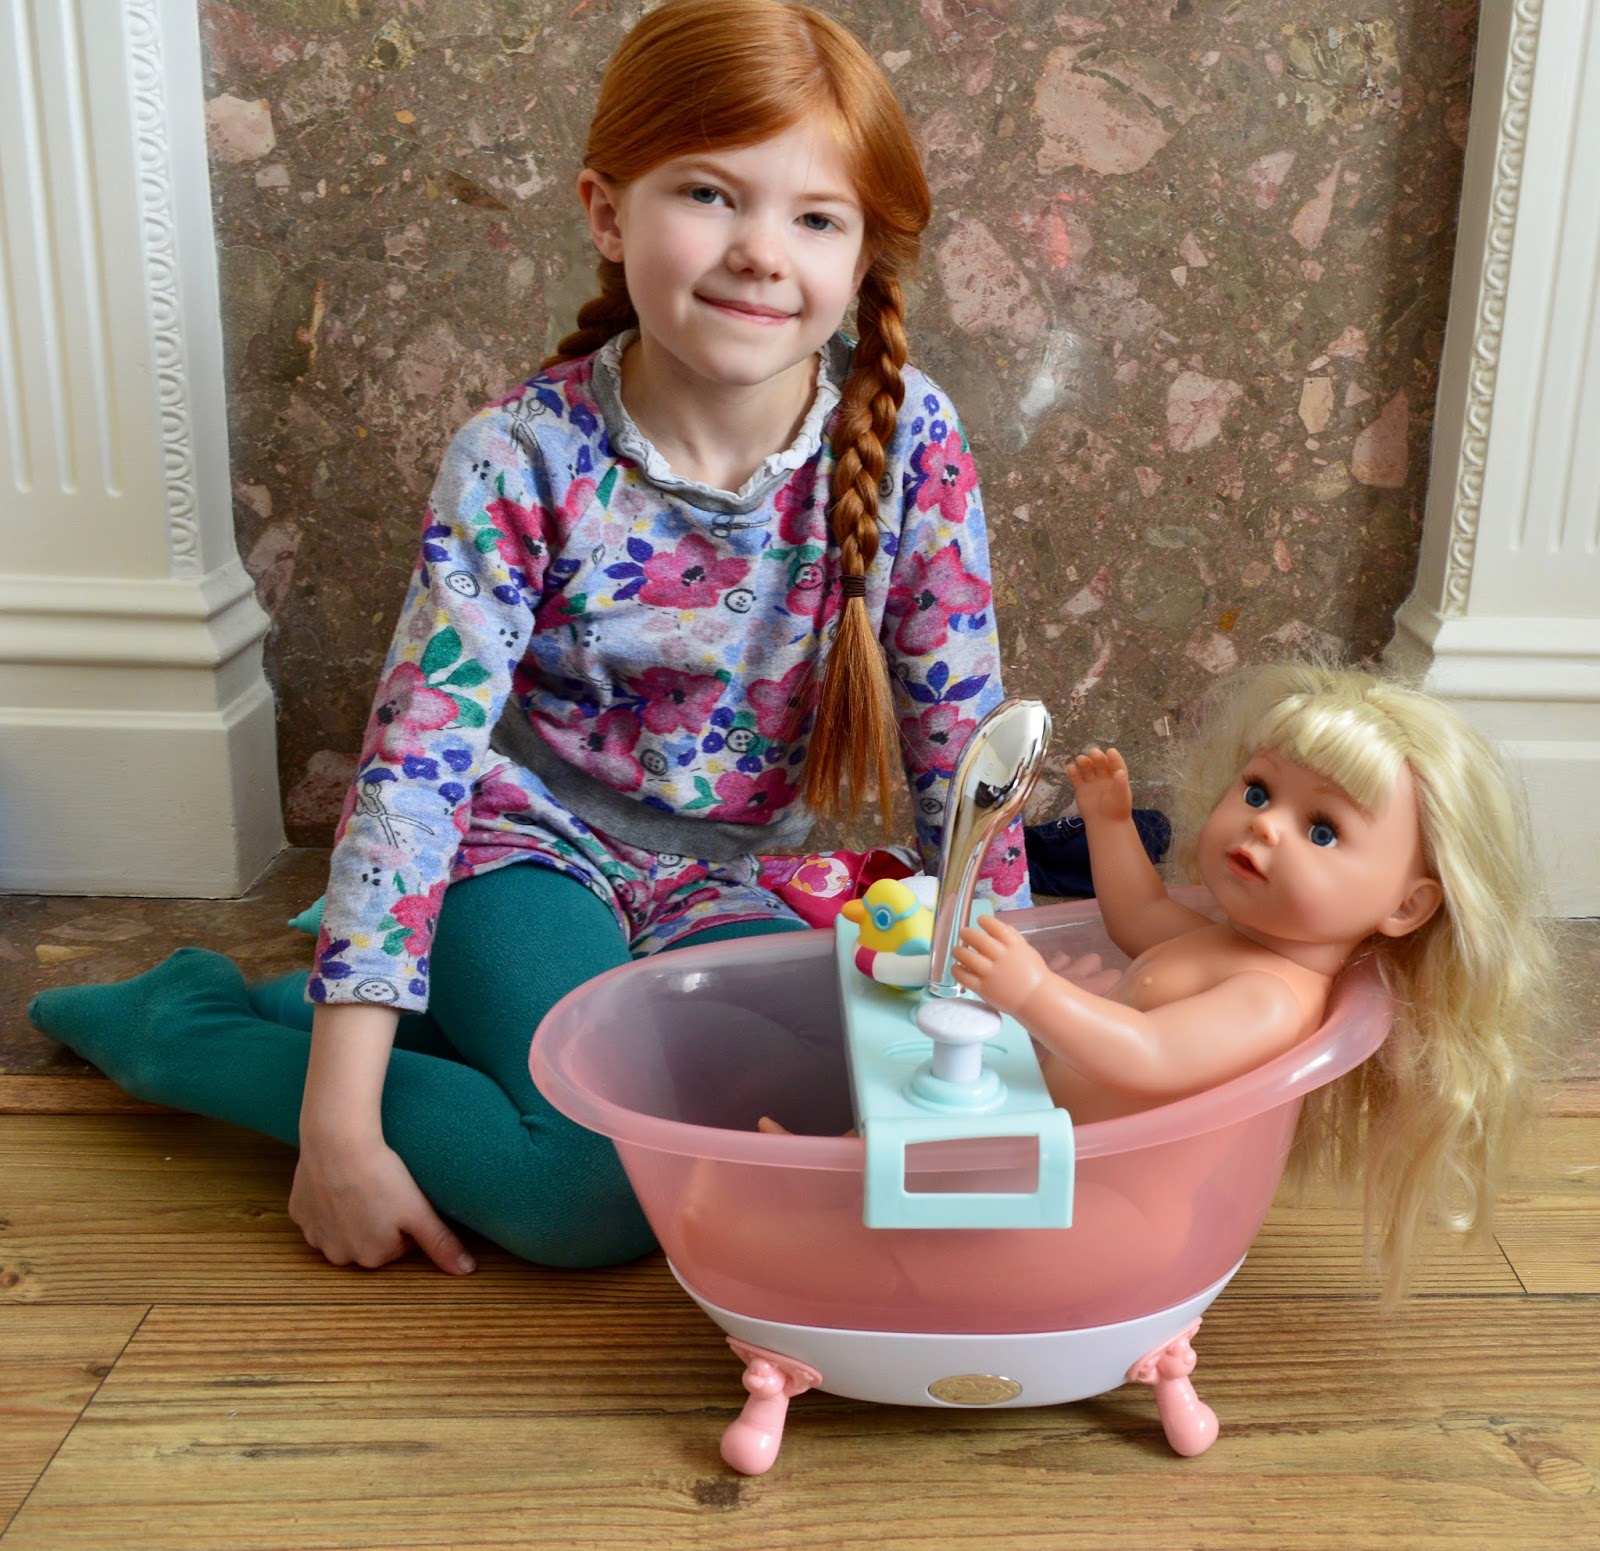 BABY Born Interactive bathtub with foam - instructions and review